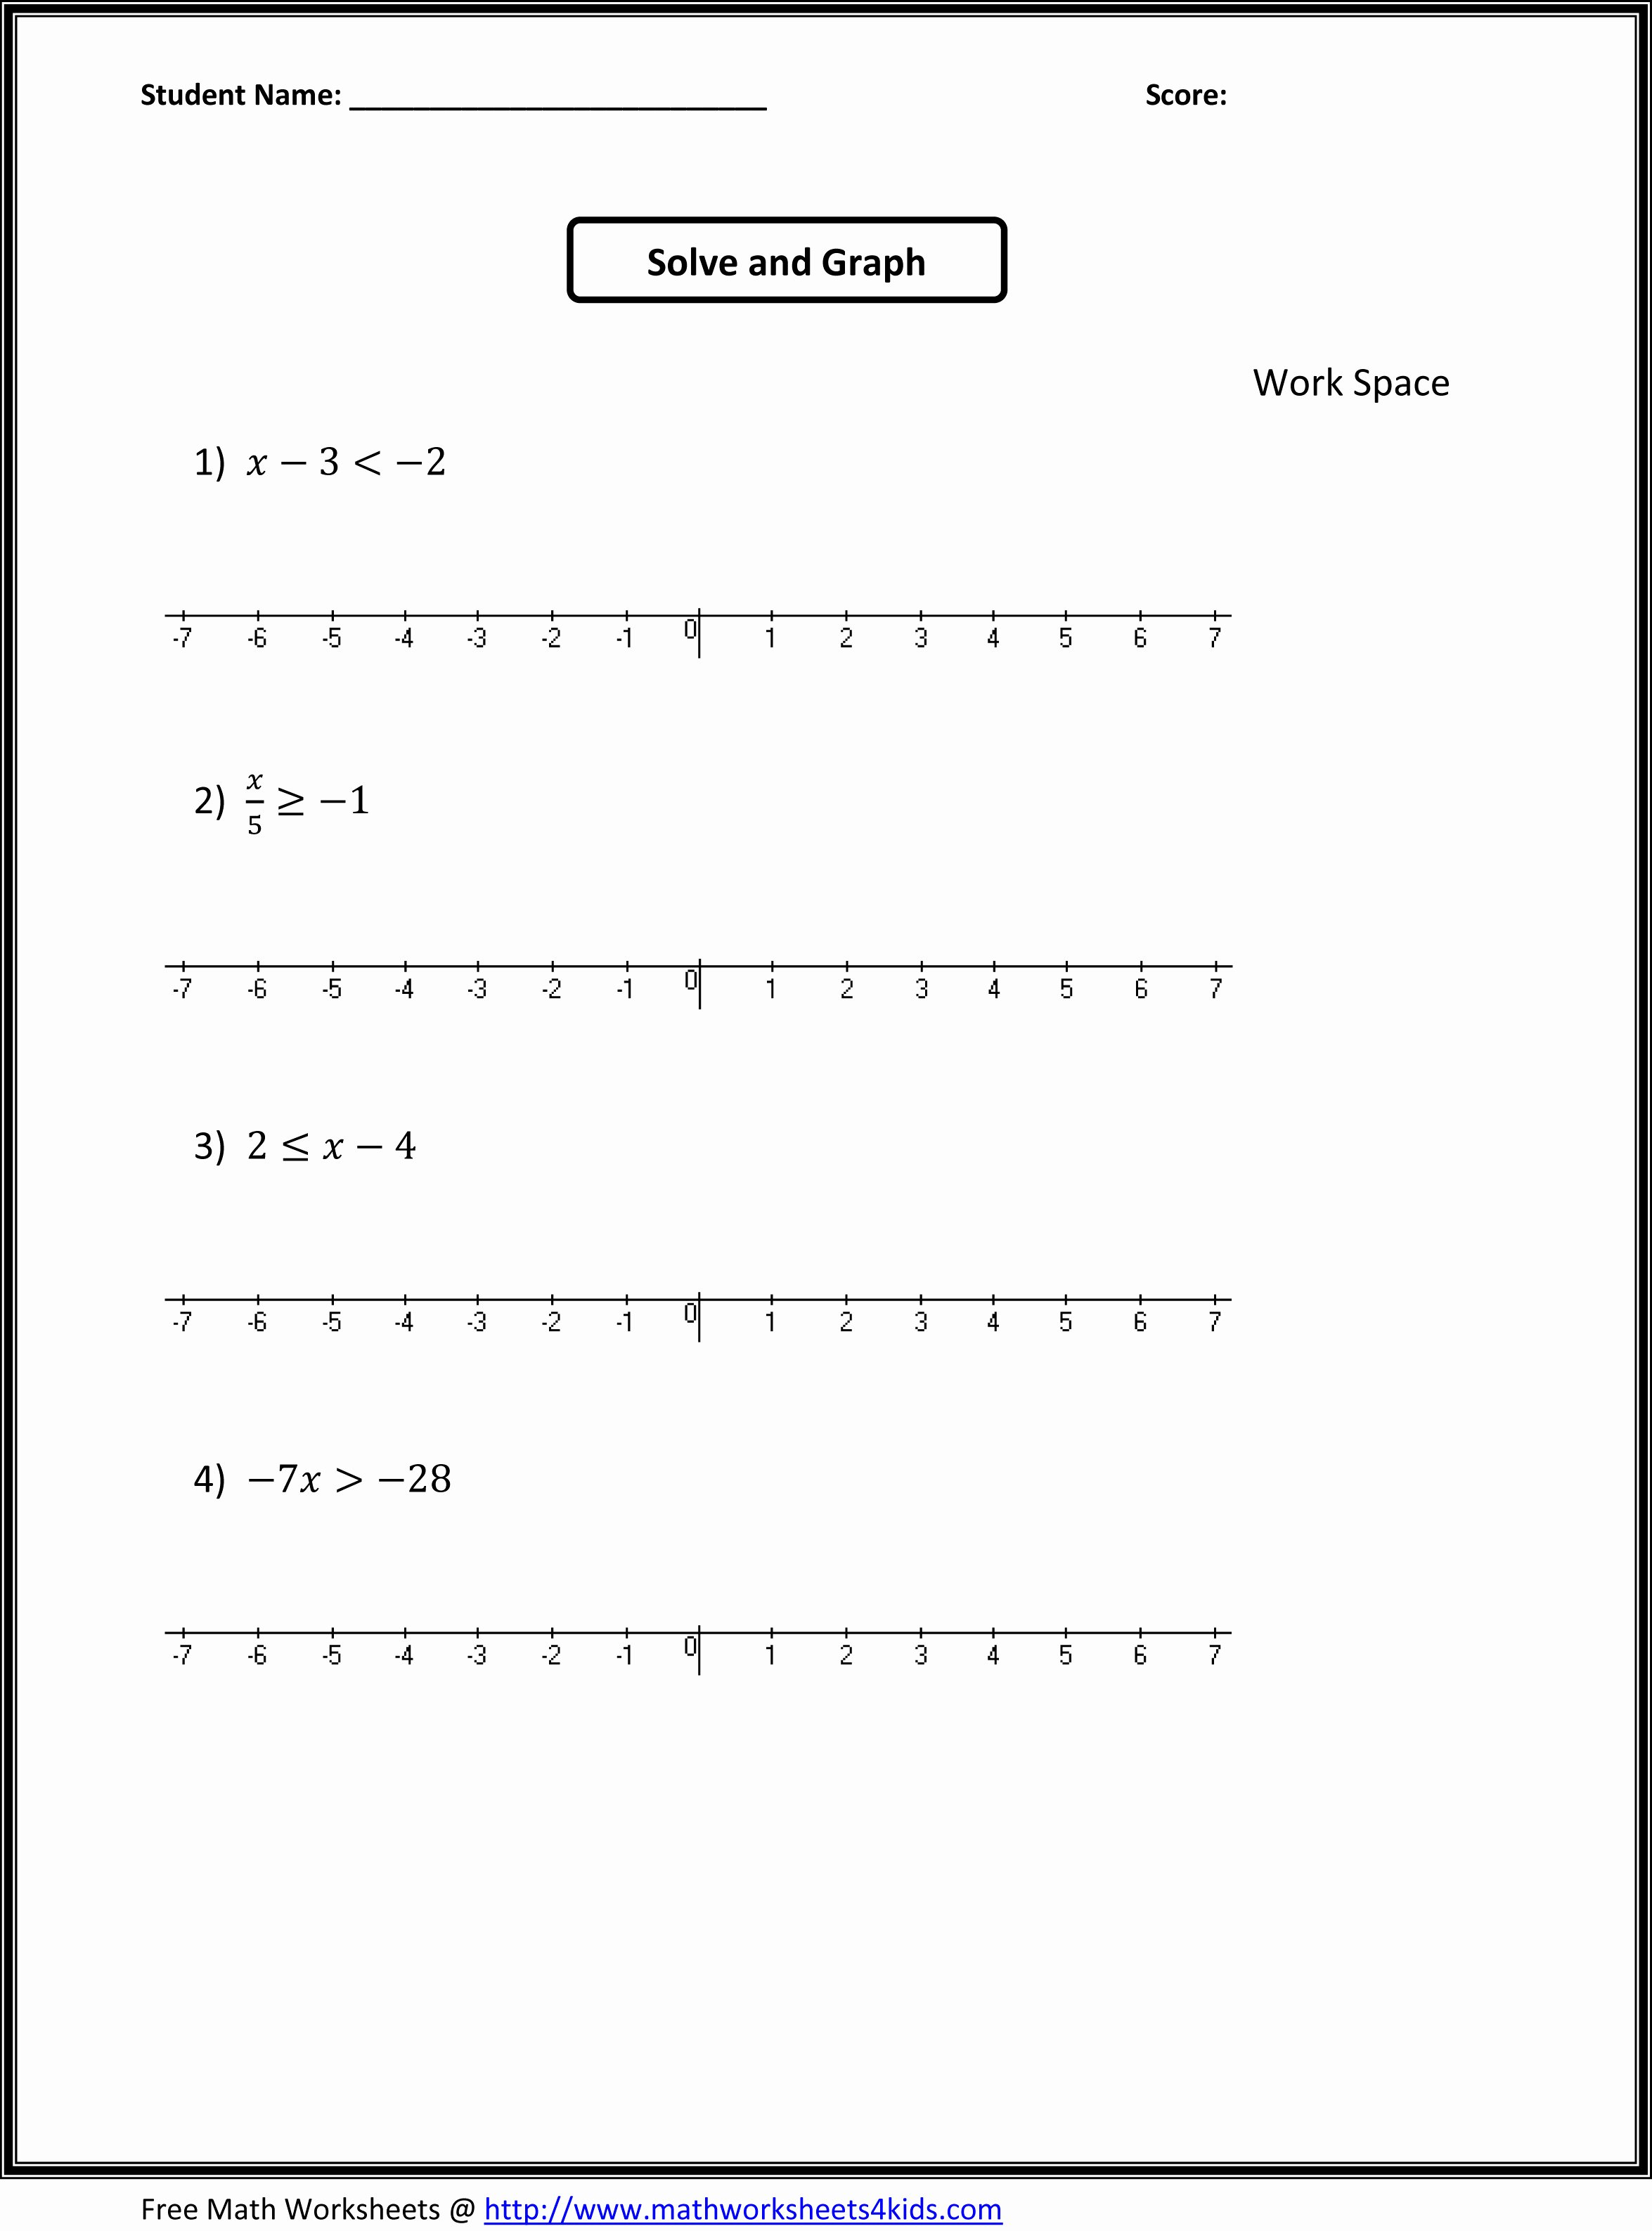 7th Grade Math Algebra Worksheets Lovely Download 7th Grade Math Worksheets